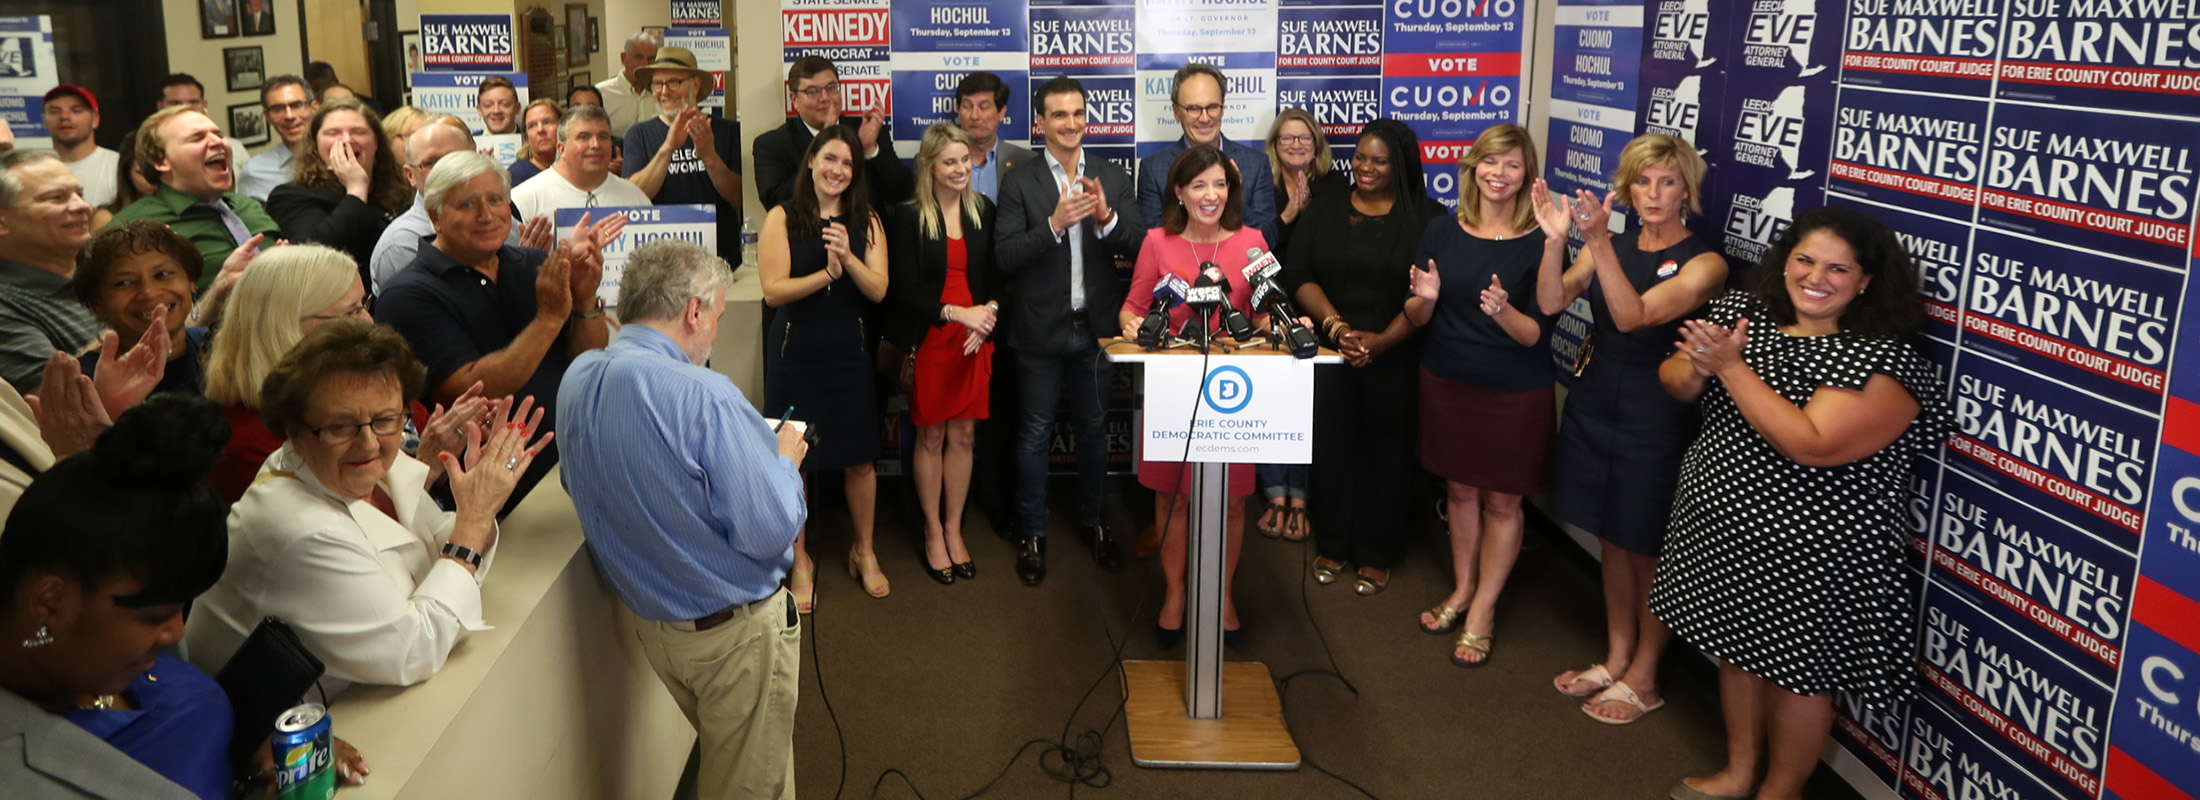 Incumbent Democratic Lt. Gov. Kathy Hochul thanks Western New York voters for putting her over the top in primary race.  (John Hickey/Buffalo News)